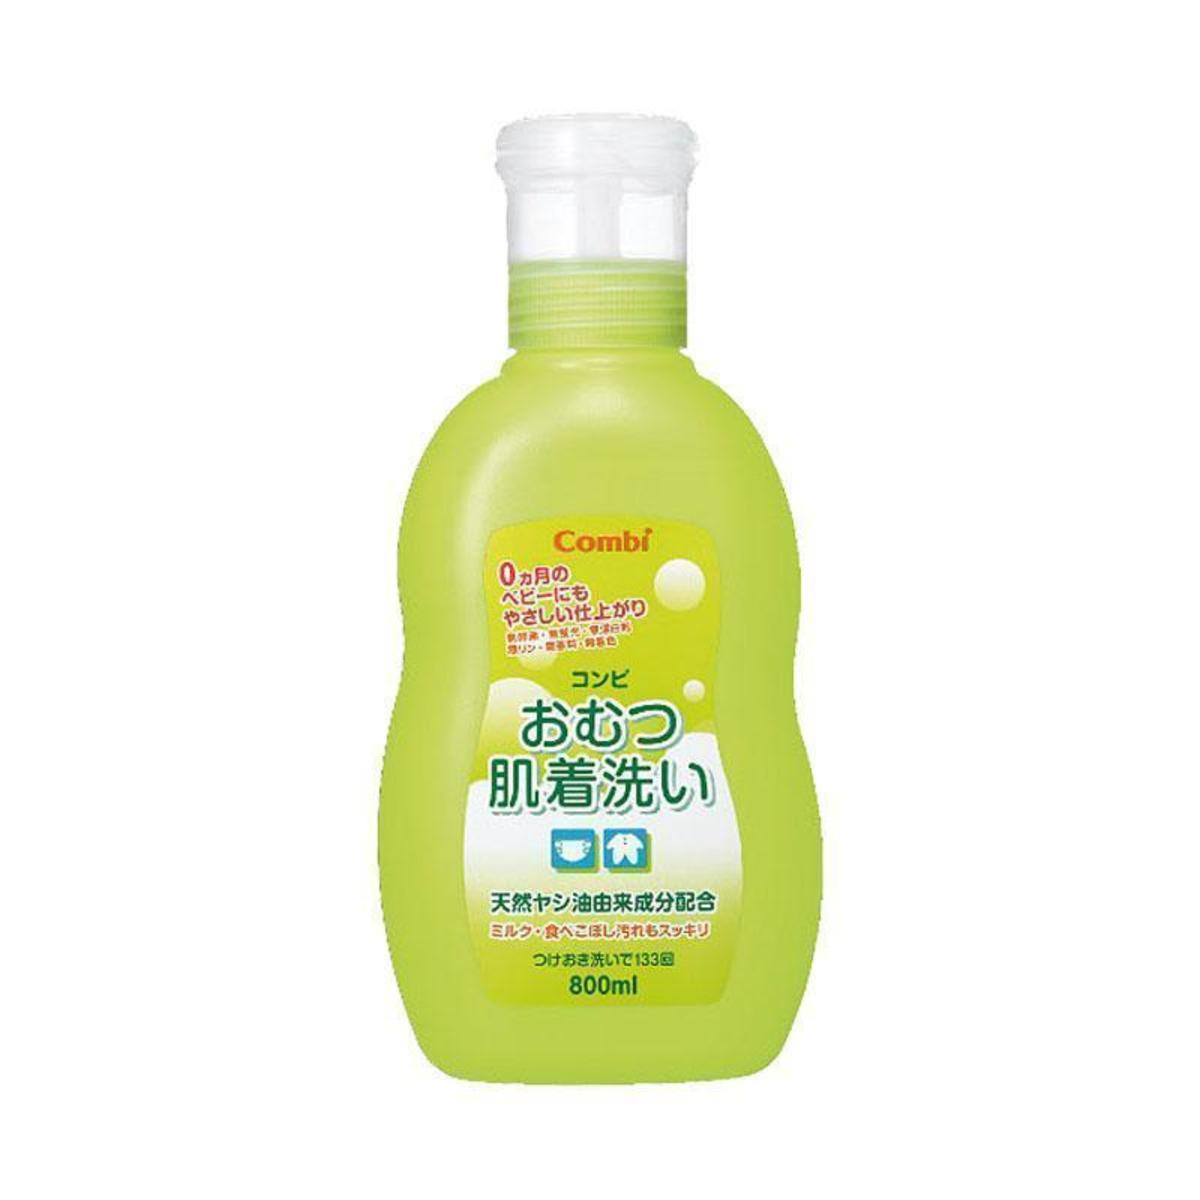 baby clothes cleaning 800ml